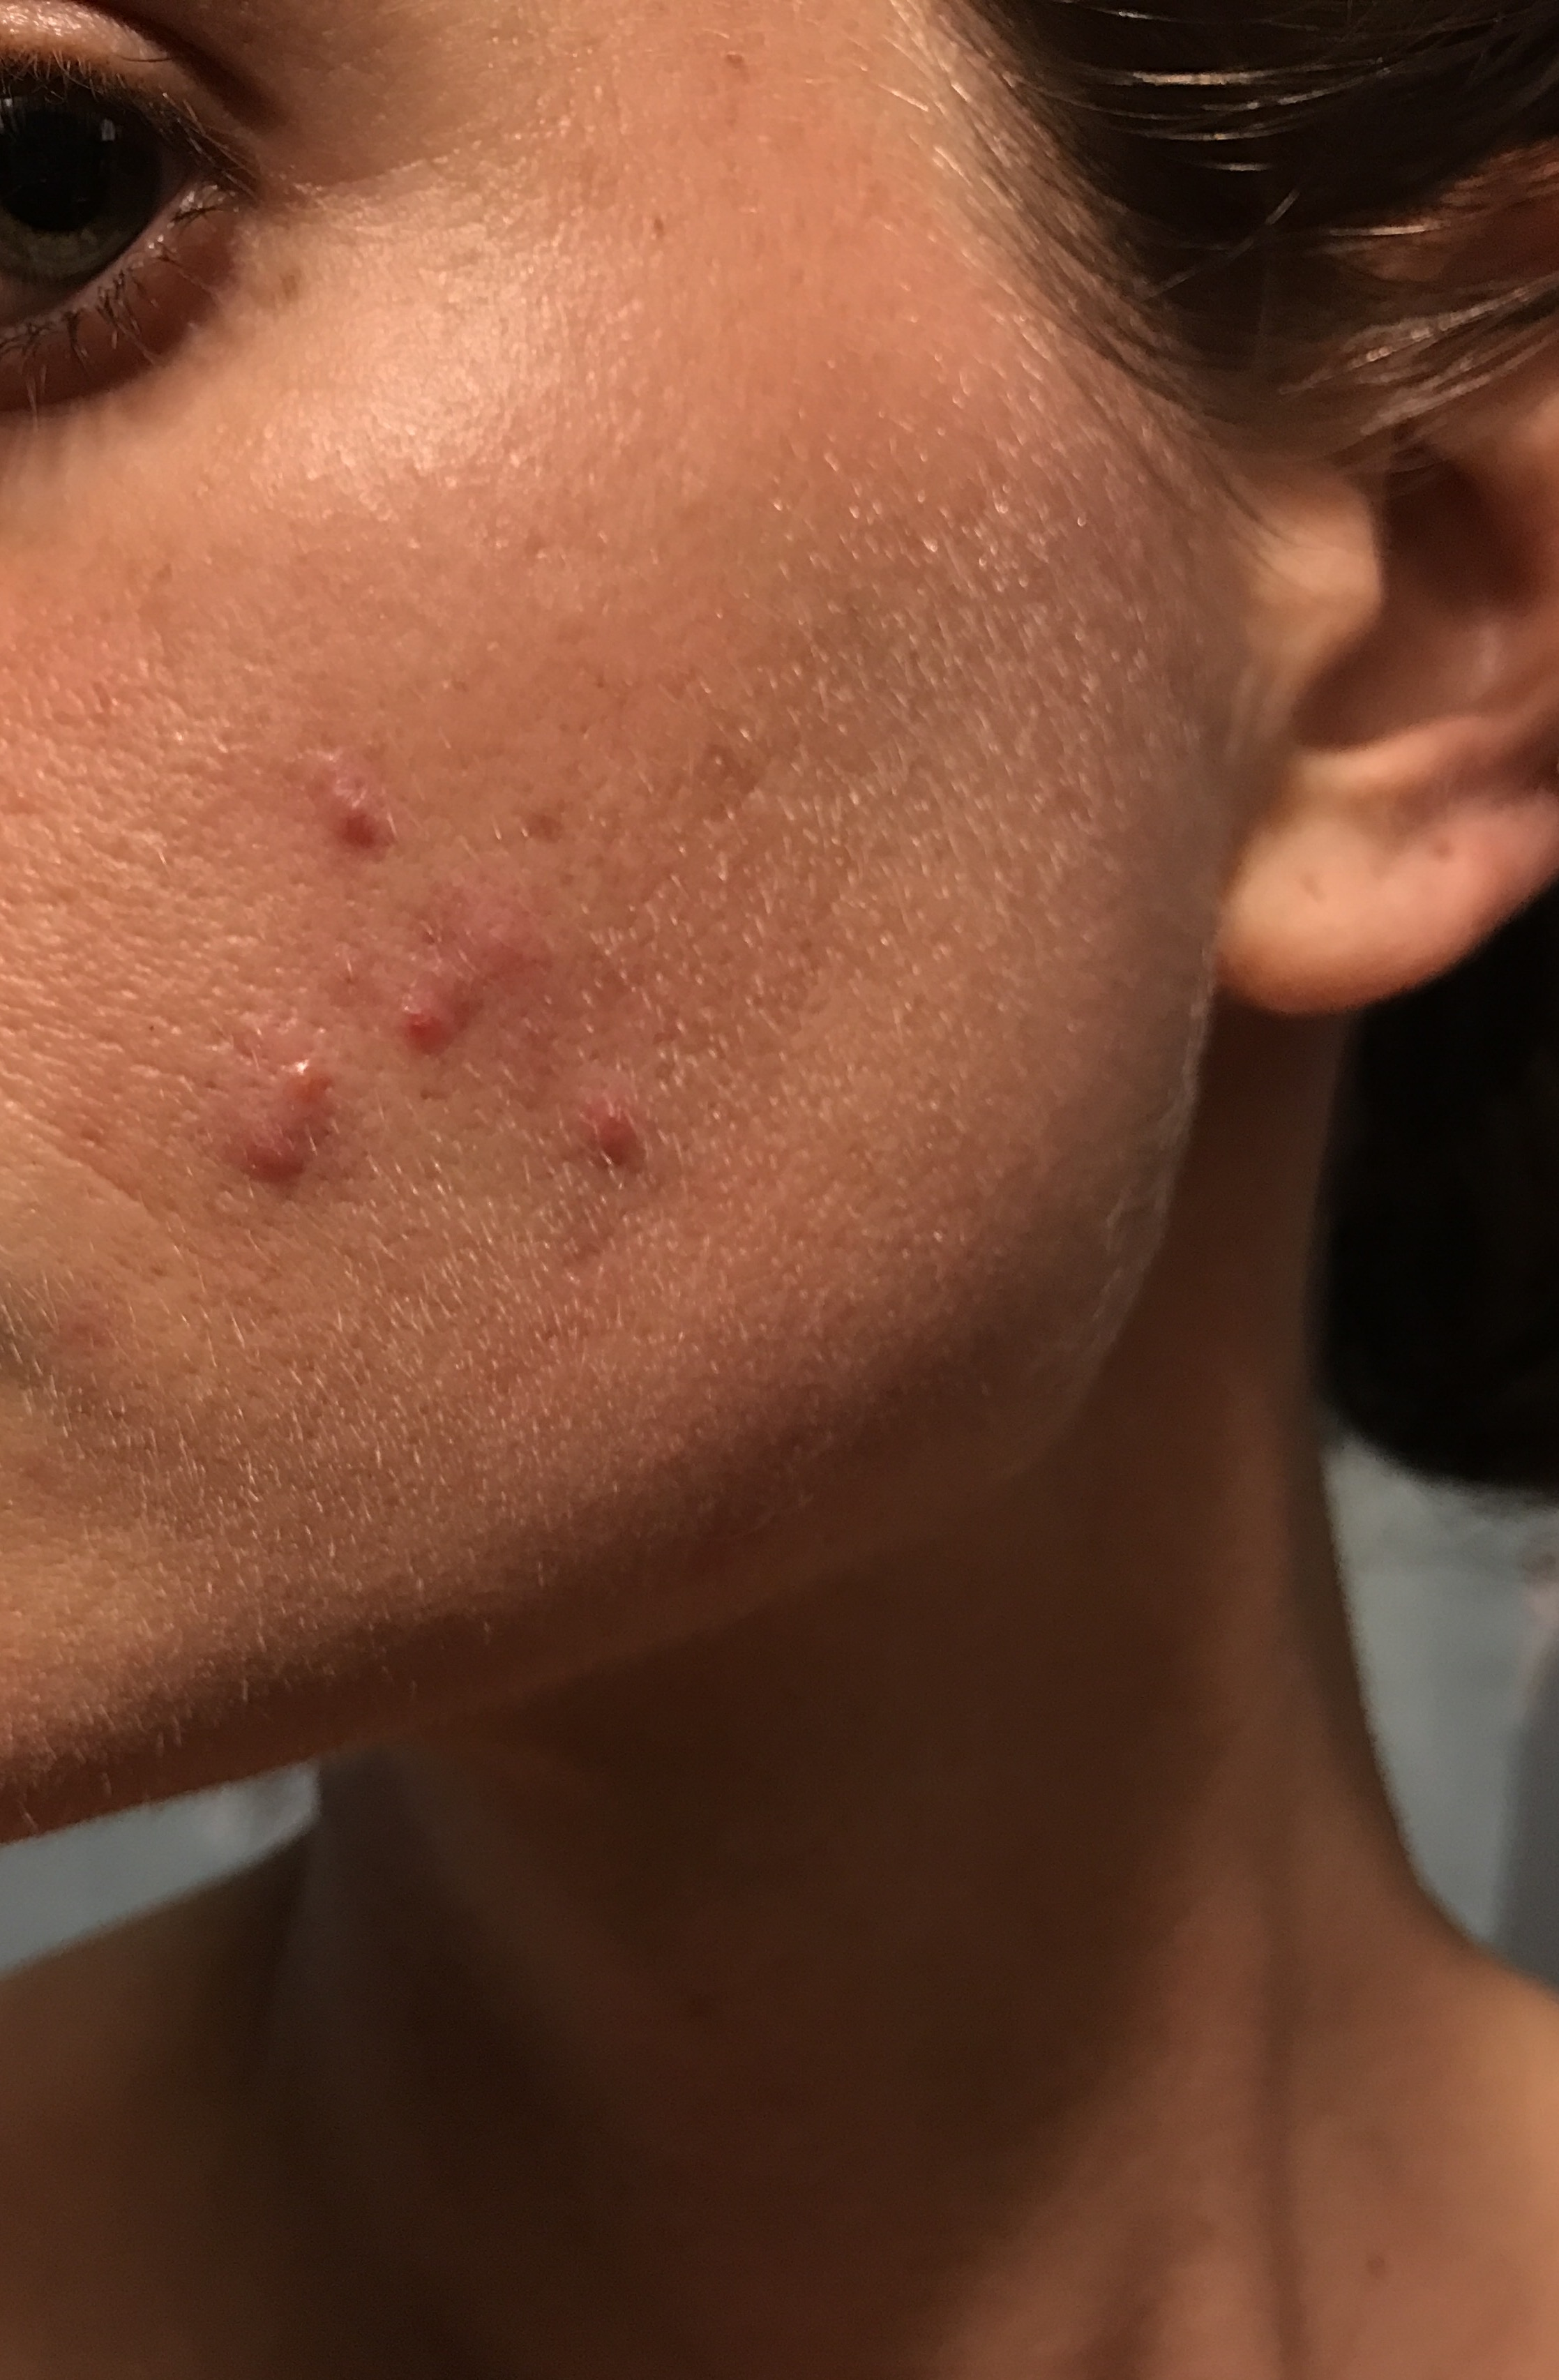 Pimples clustered on one cheek adult acne acne community img1130g pooptronica